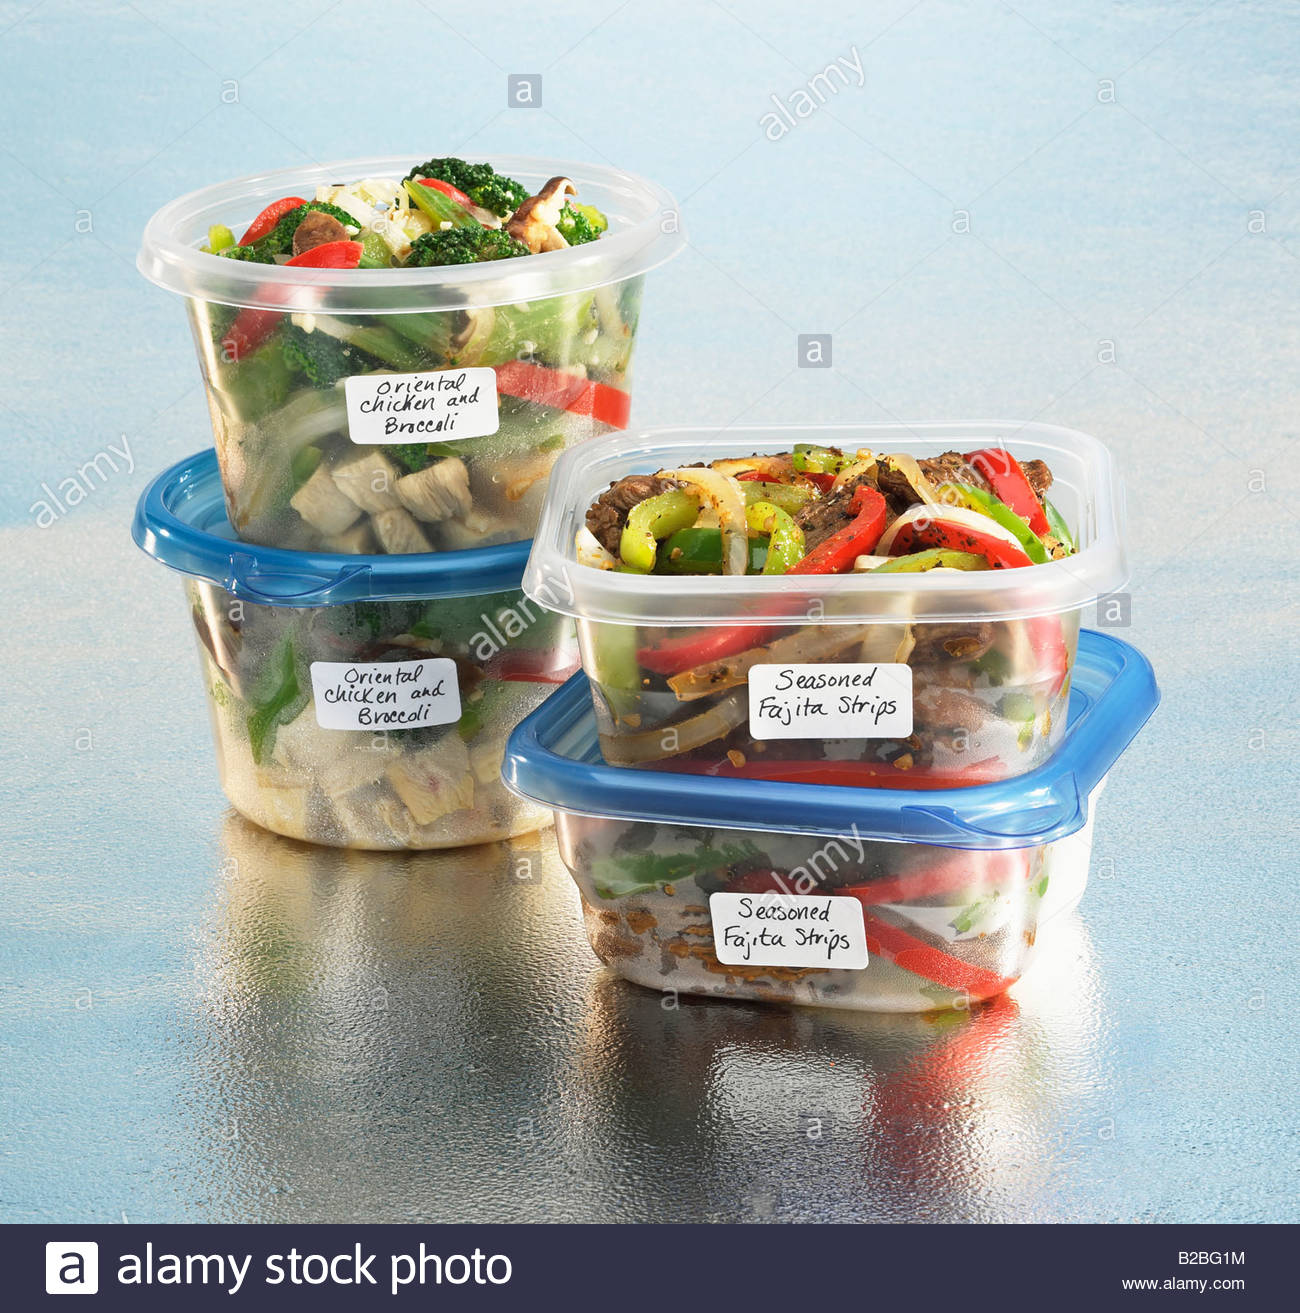 Food in labeled plastic containers - Stock Image